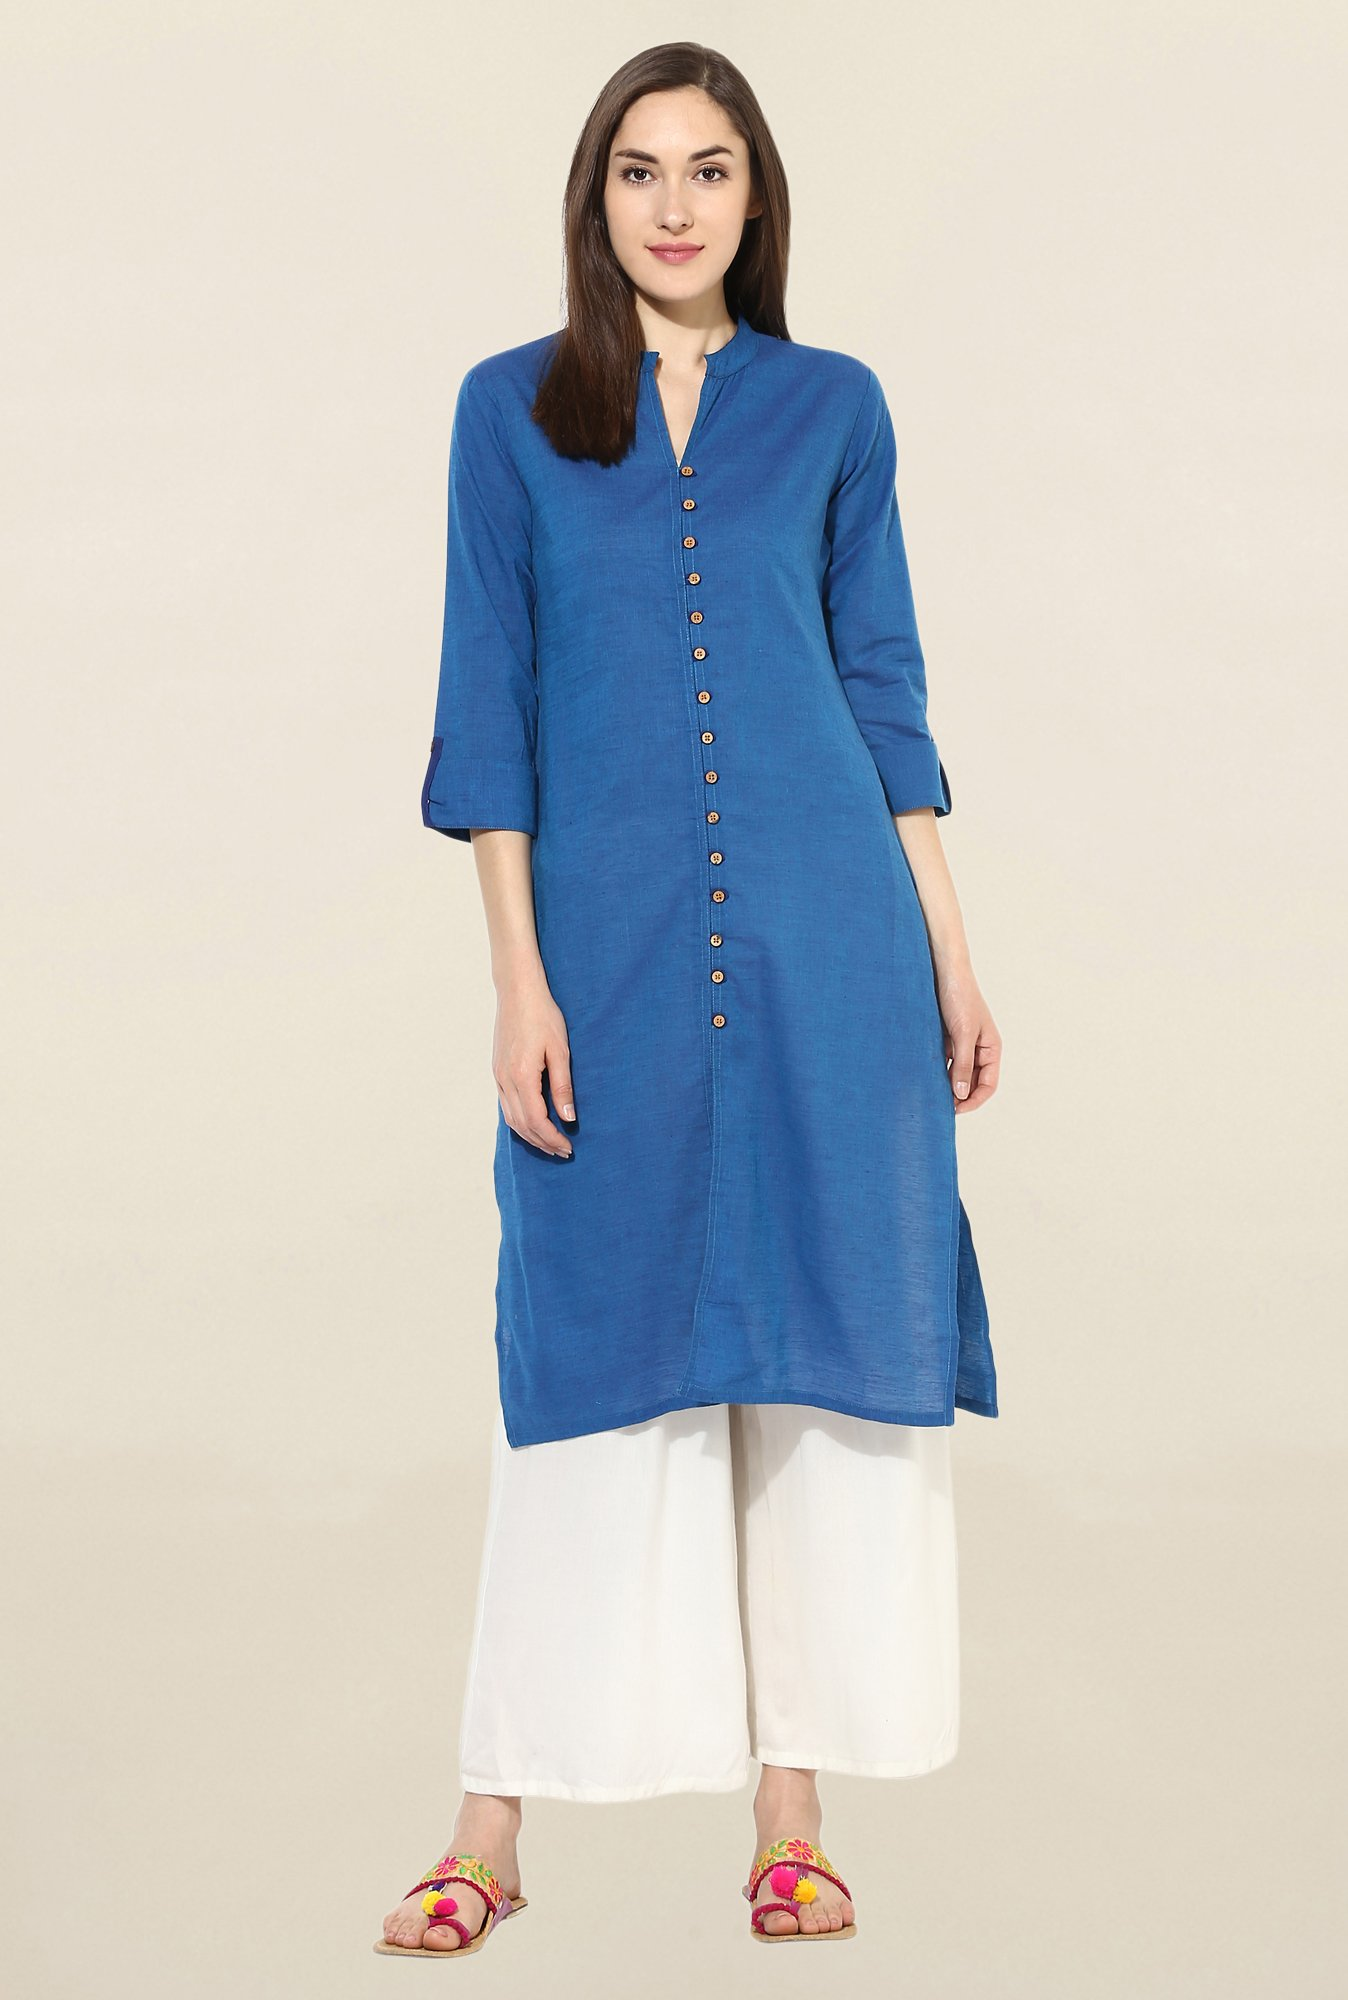 Mytri Blue Solid South Cotton Kurta